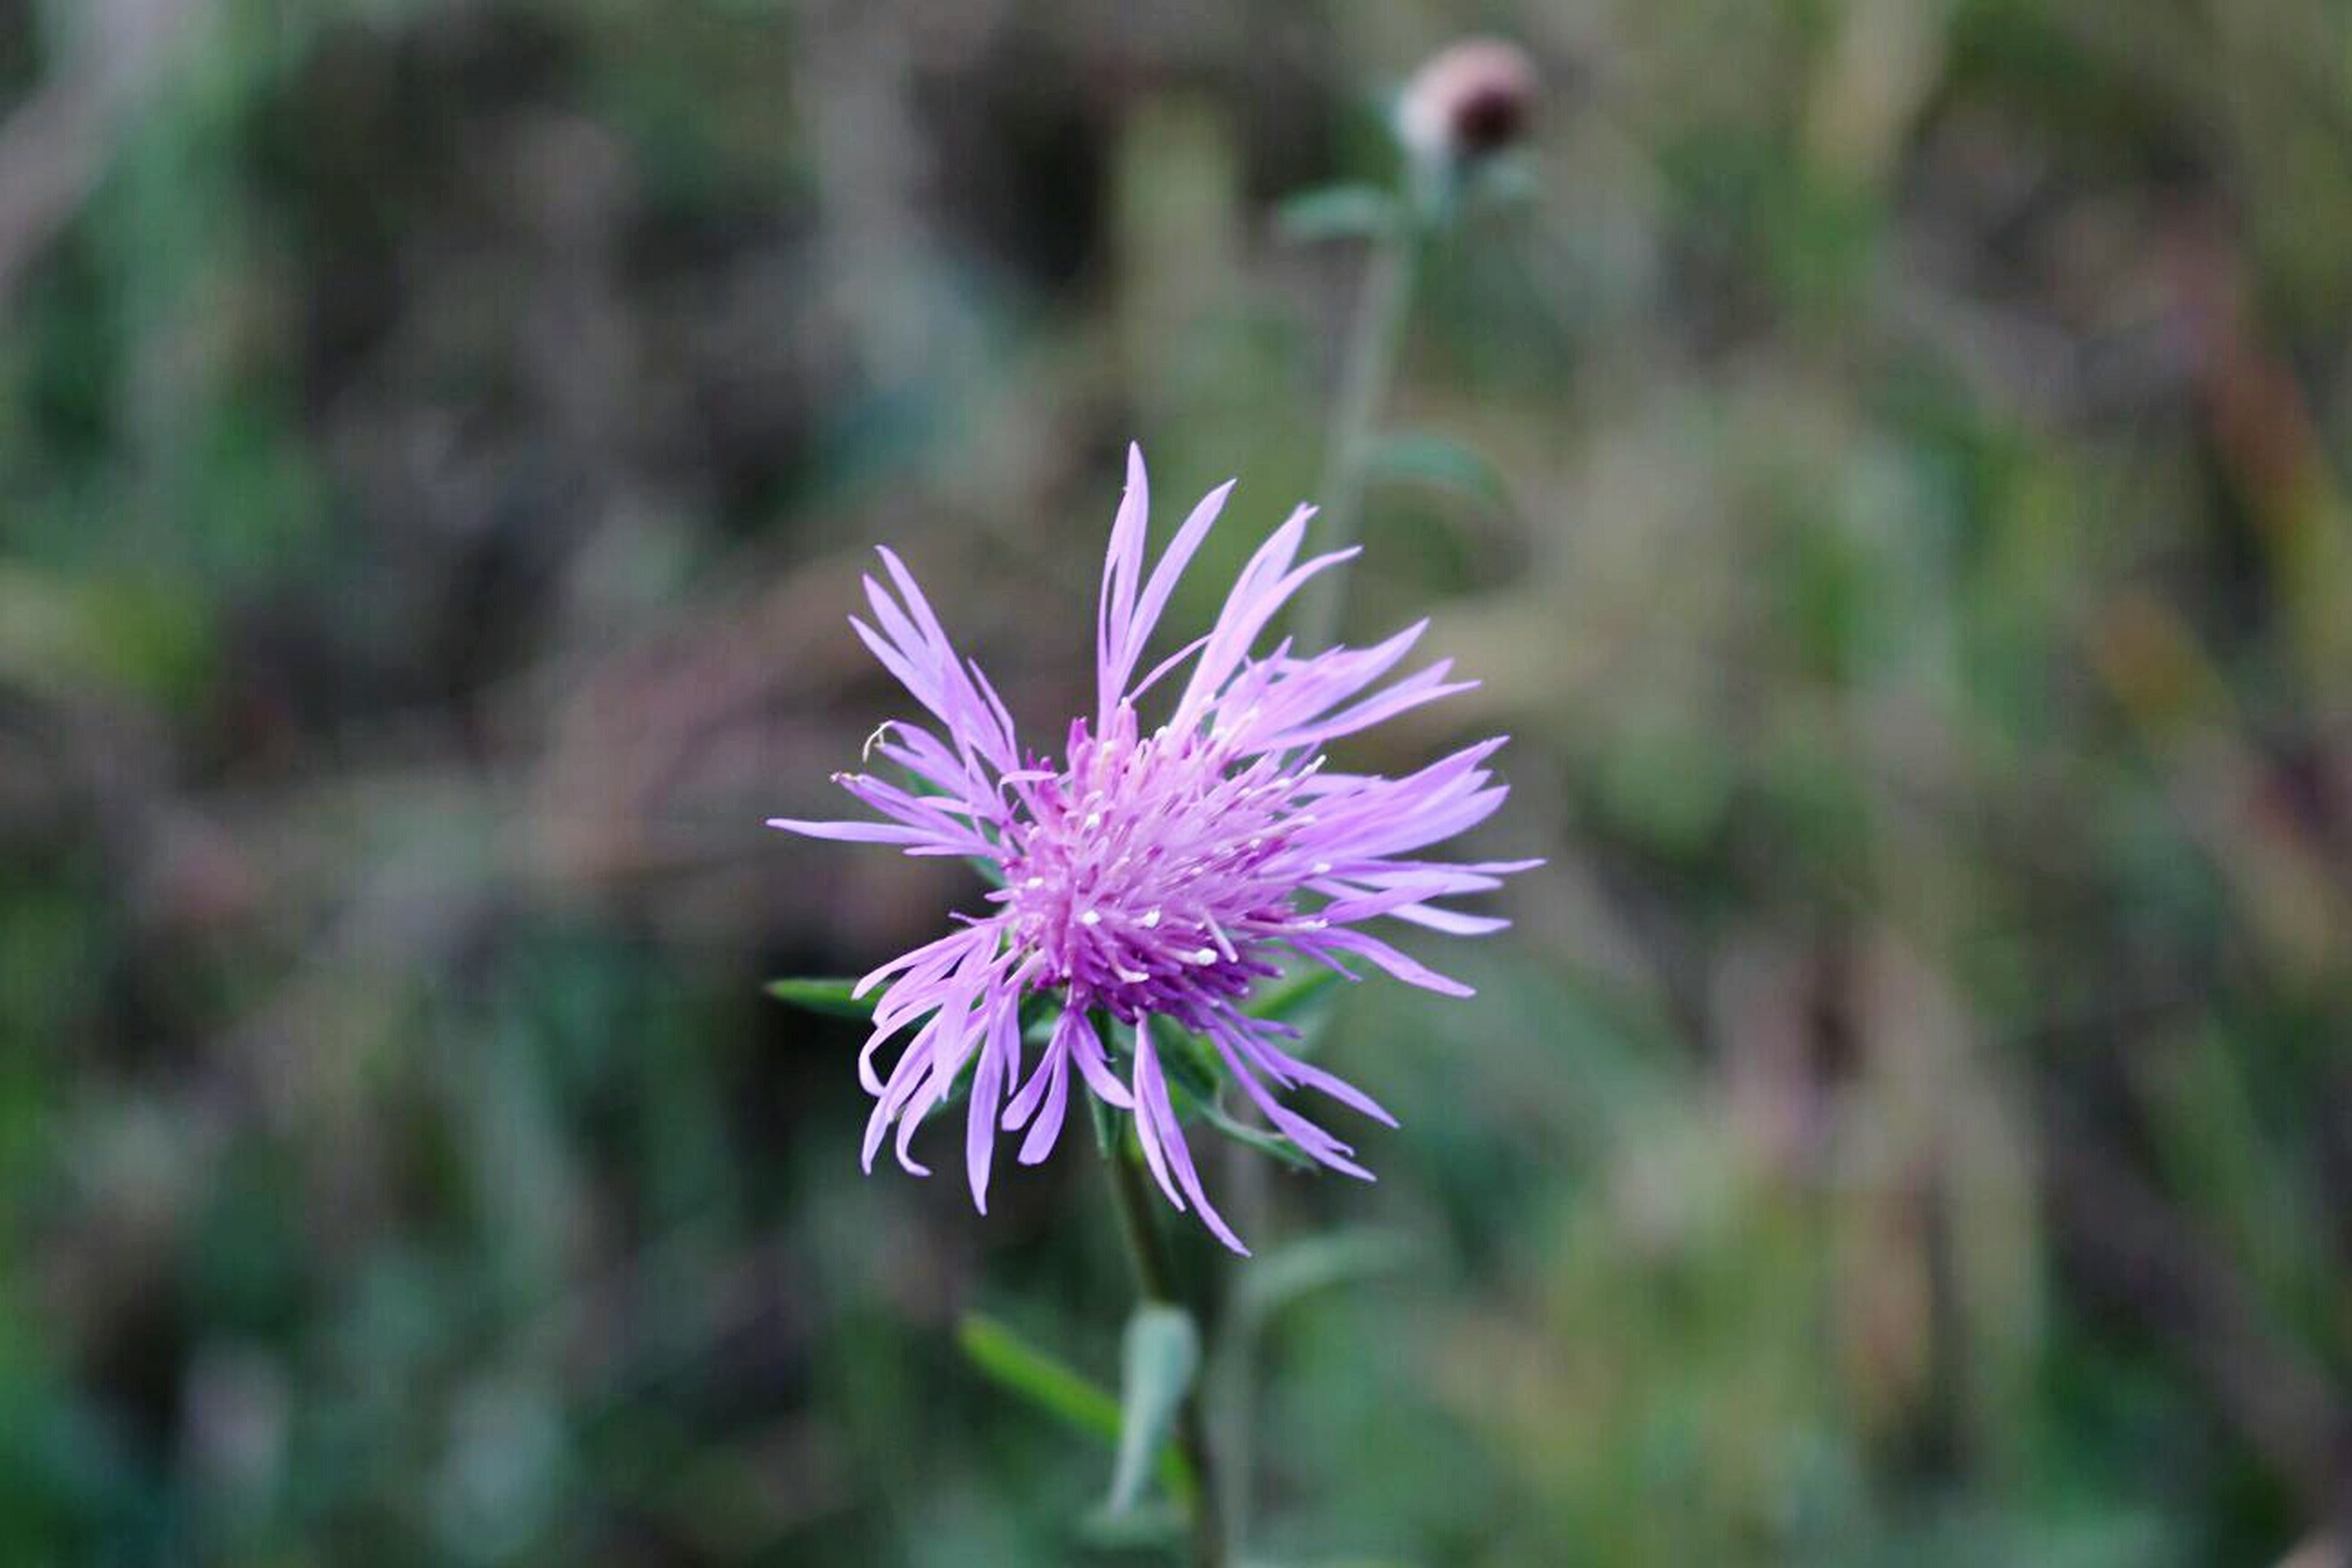 purple, fragility, flower, freshness, growth, petal, flower head, beauty in nature, focus on foreground, stem, springtime, in bloom, single flower, close-up, nature, plant, botany, vibrant color, thistle, blooming, blossom, day, outdoors, bloom, pink, purple color, pink color, softness